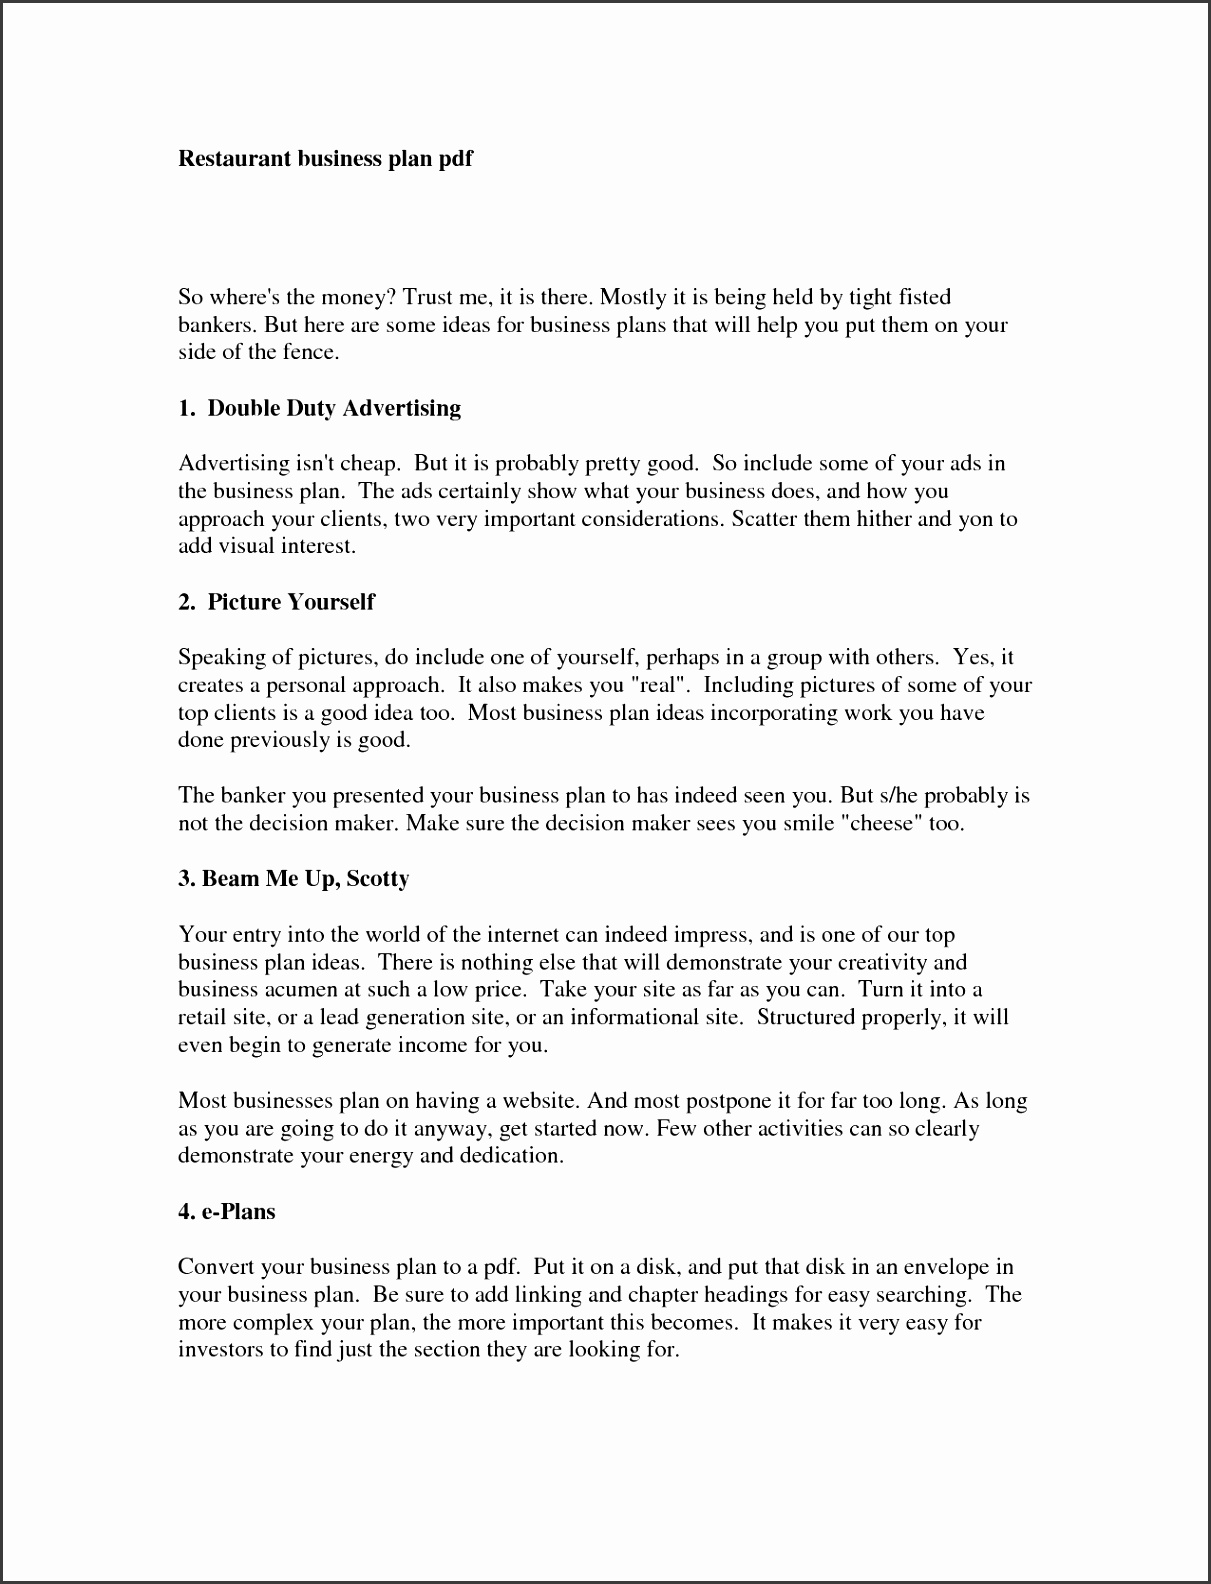 Simple Business Plan Templates SampleTemplatess SampleTemplatess - Business plan template simple